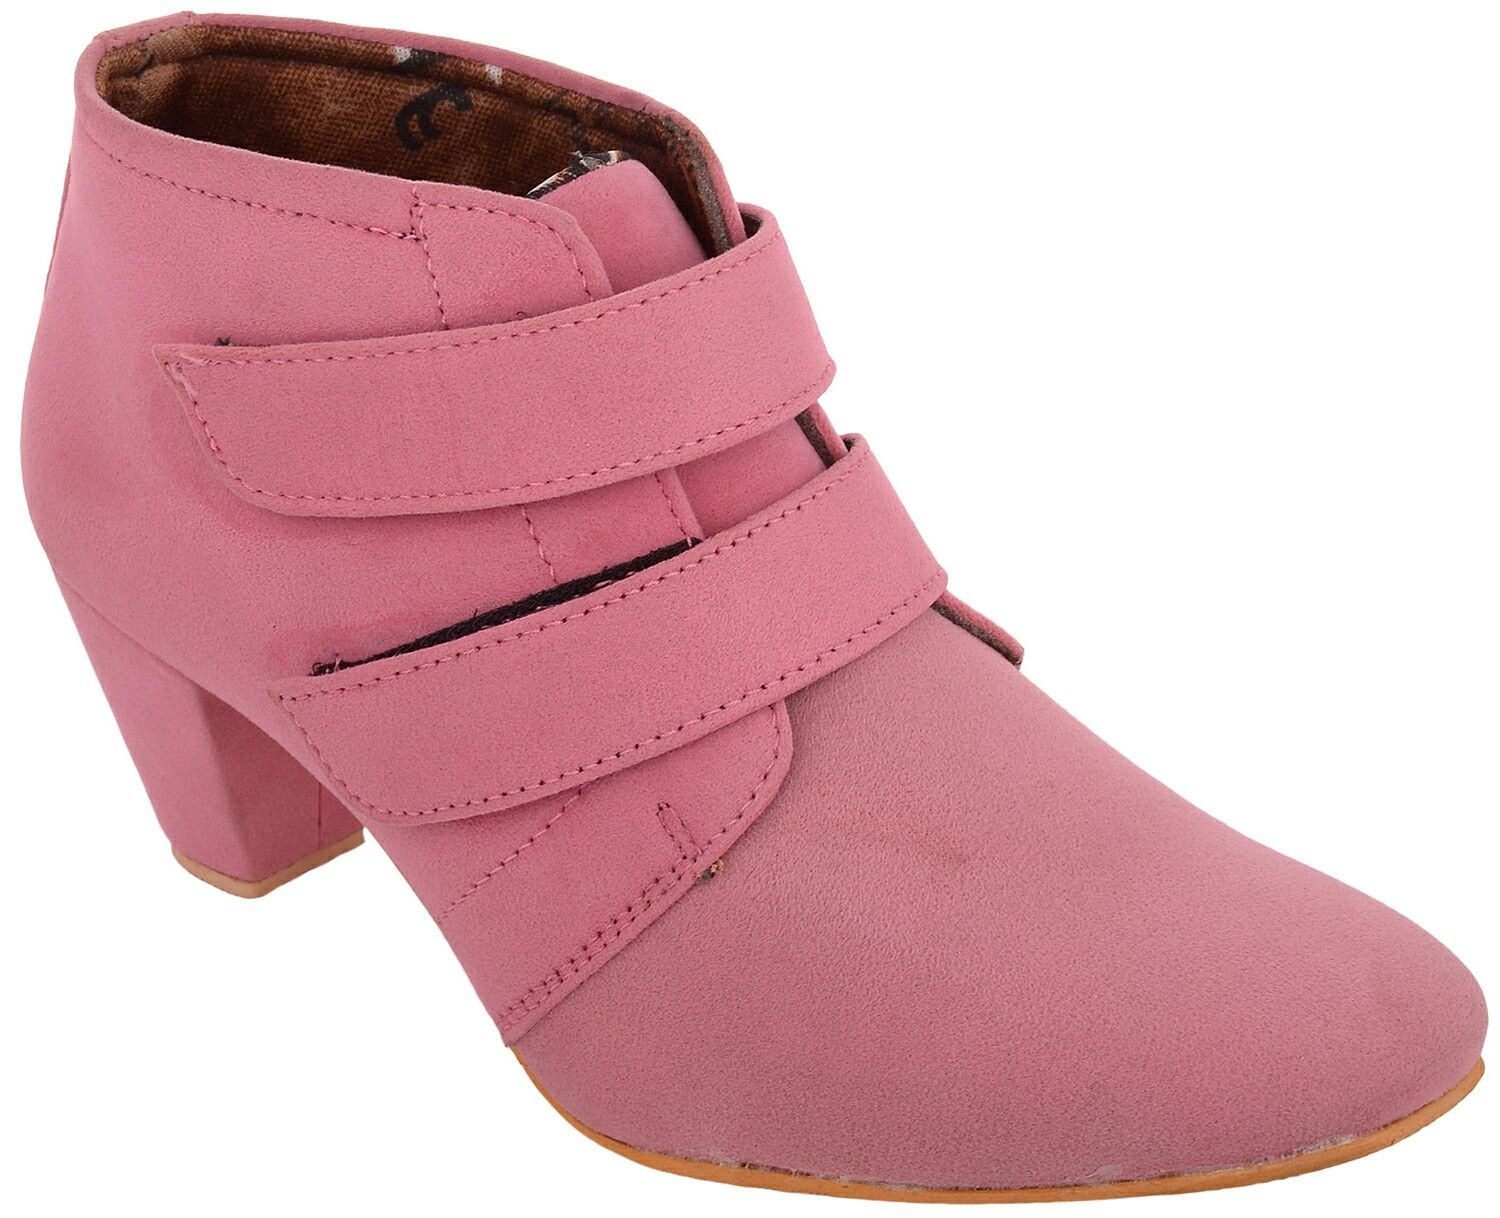 Boots #casual #exotique_shoes Shop Exotique Shoes & Accessories ...